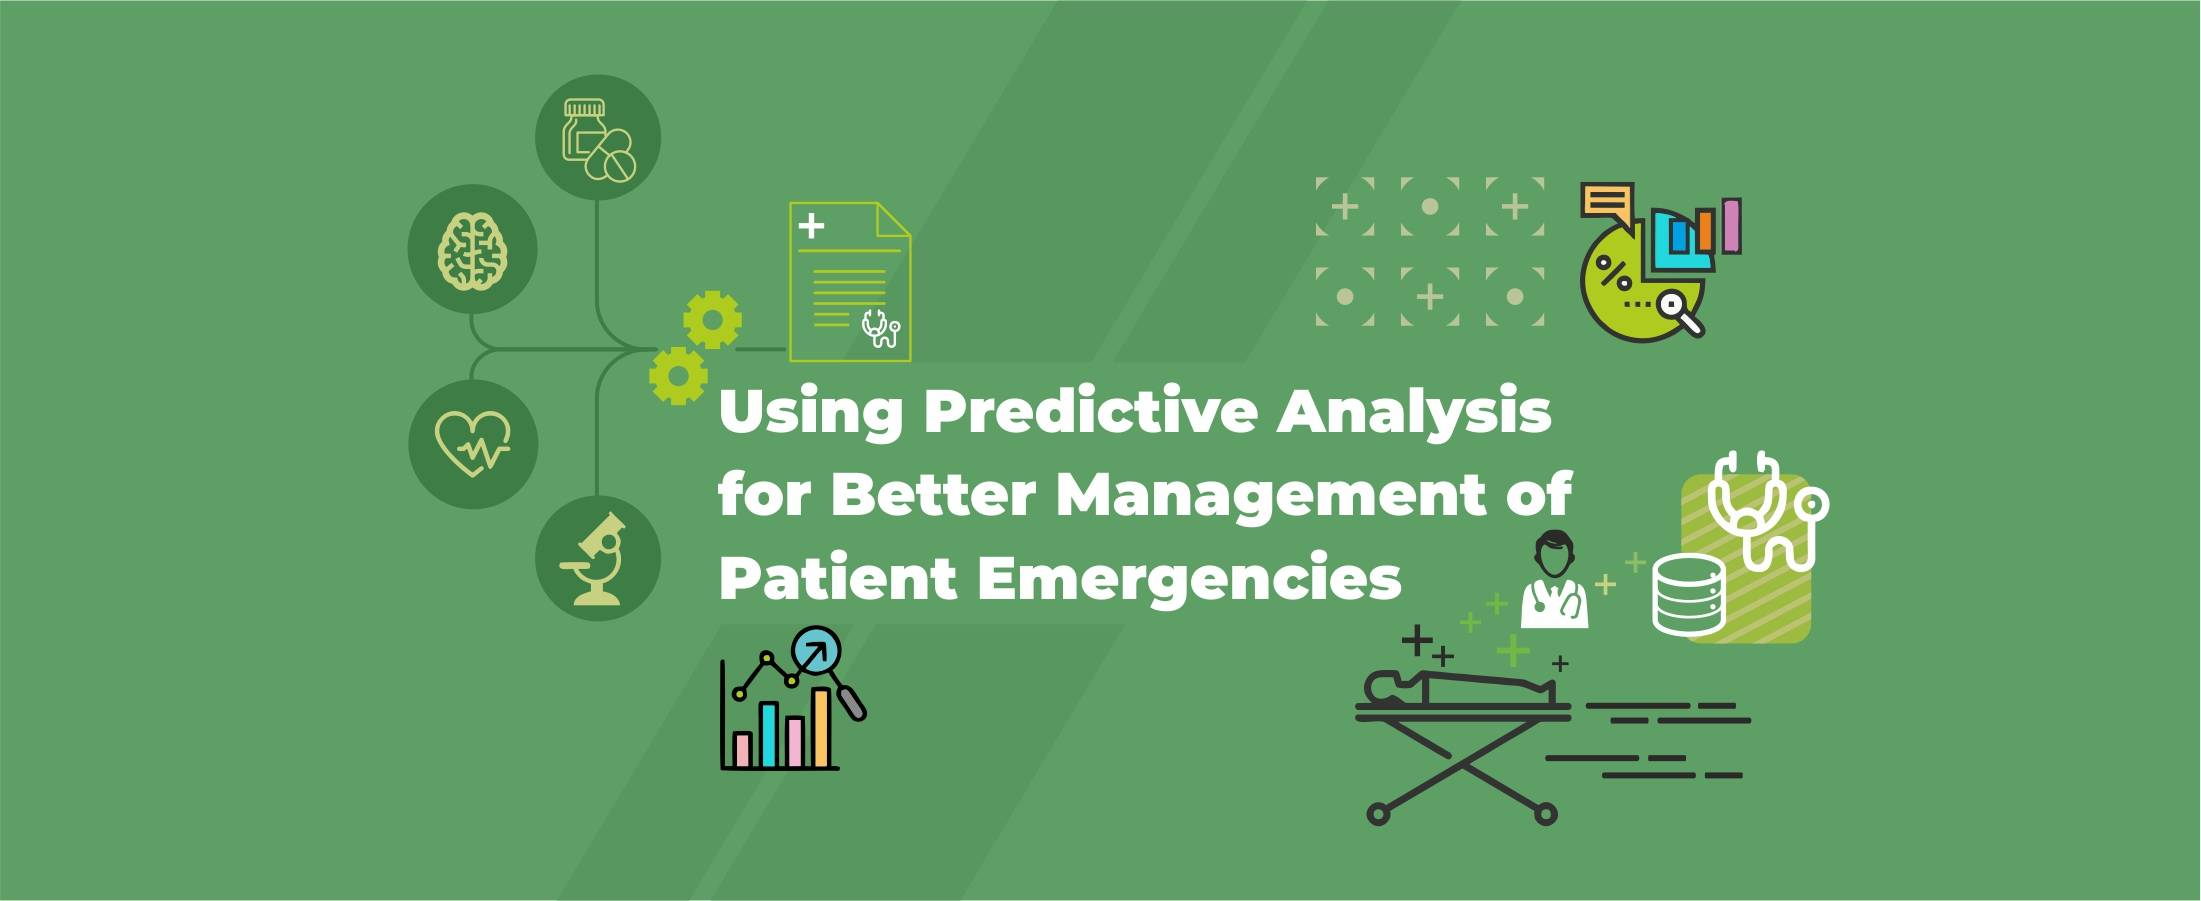 Using Predictive Analysis for Better Management of Patient Emergencies